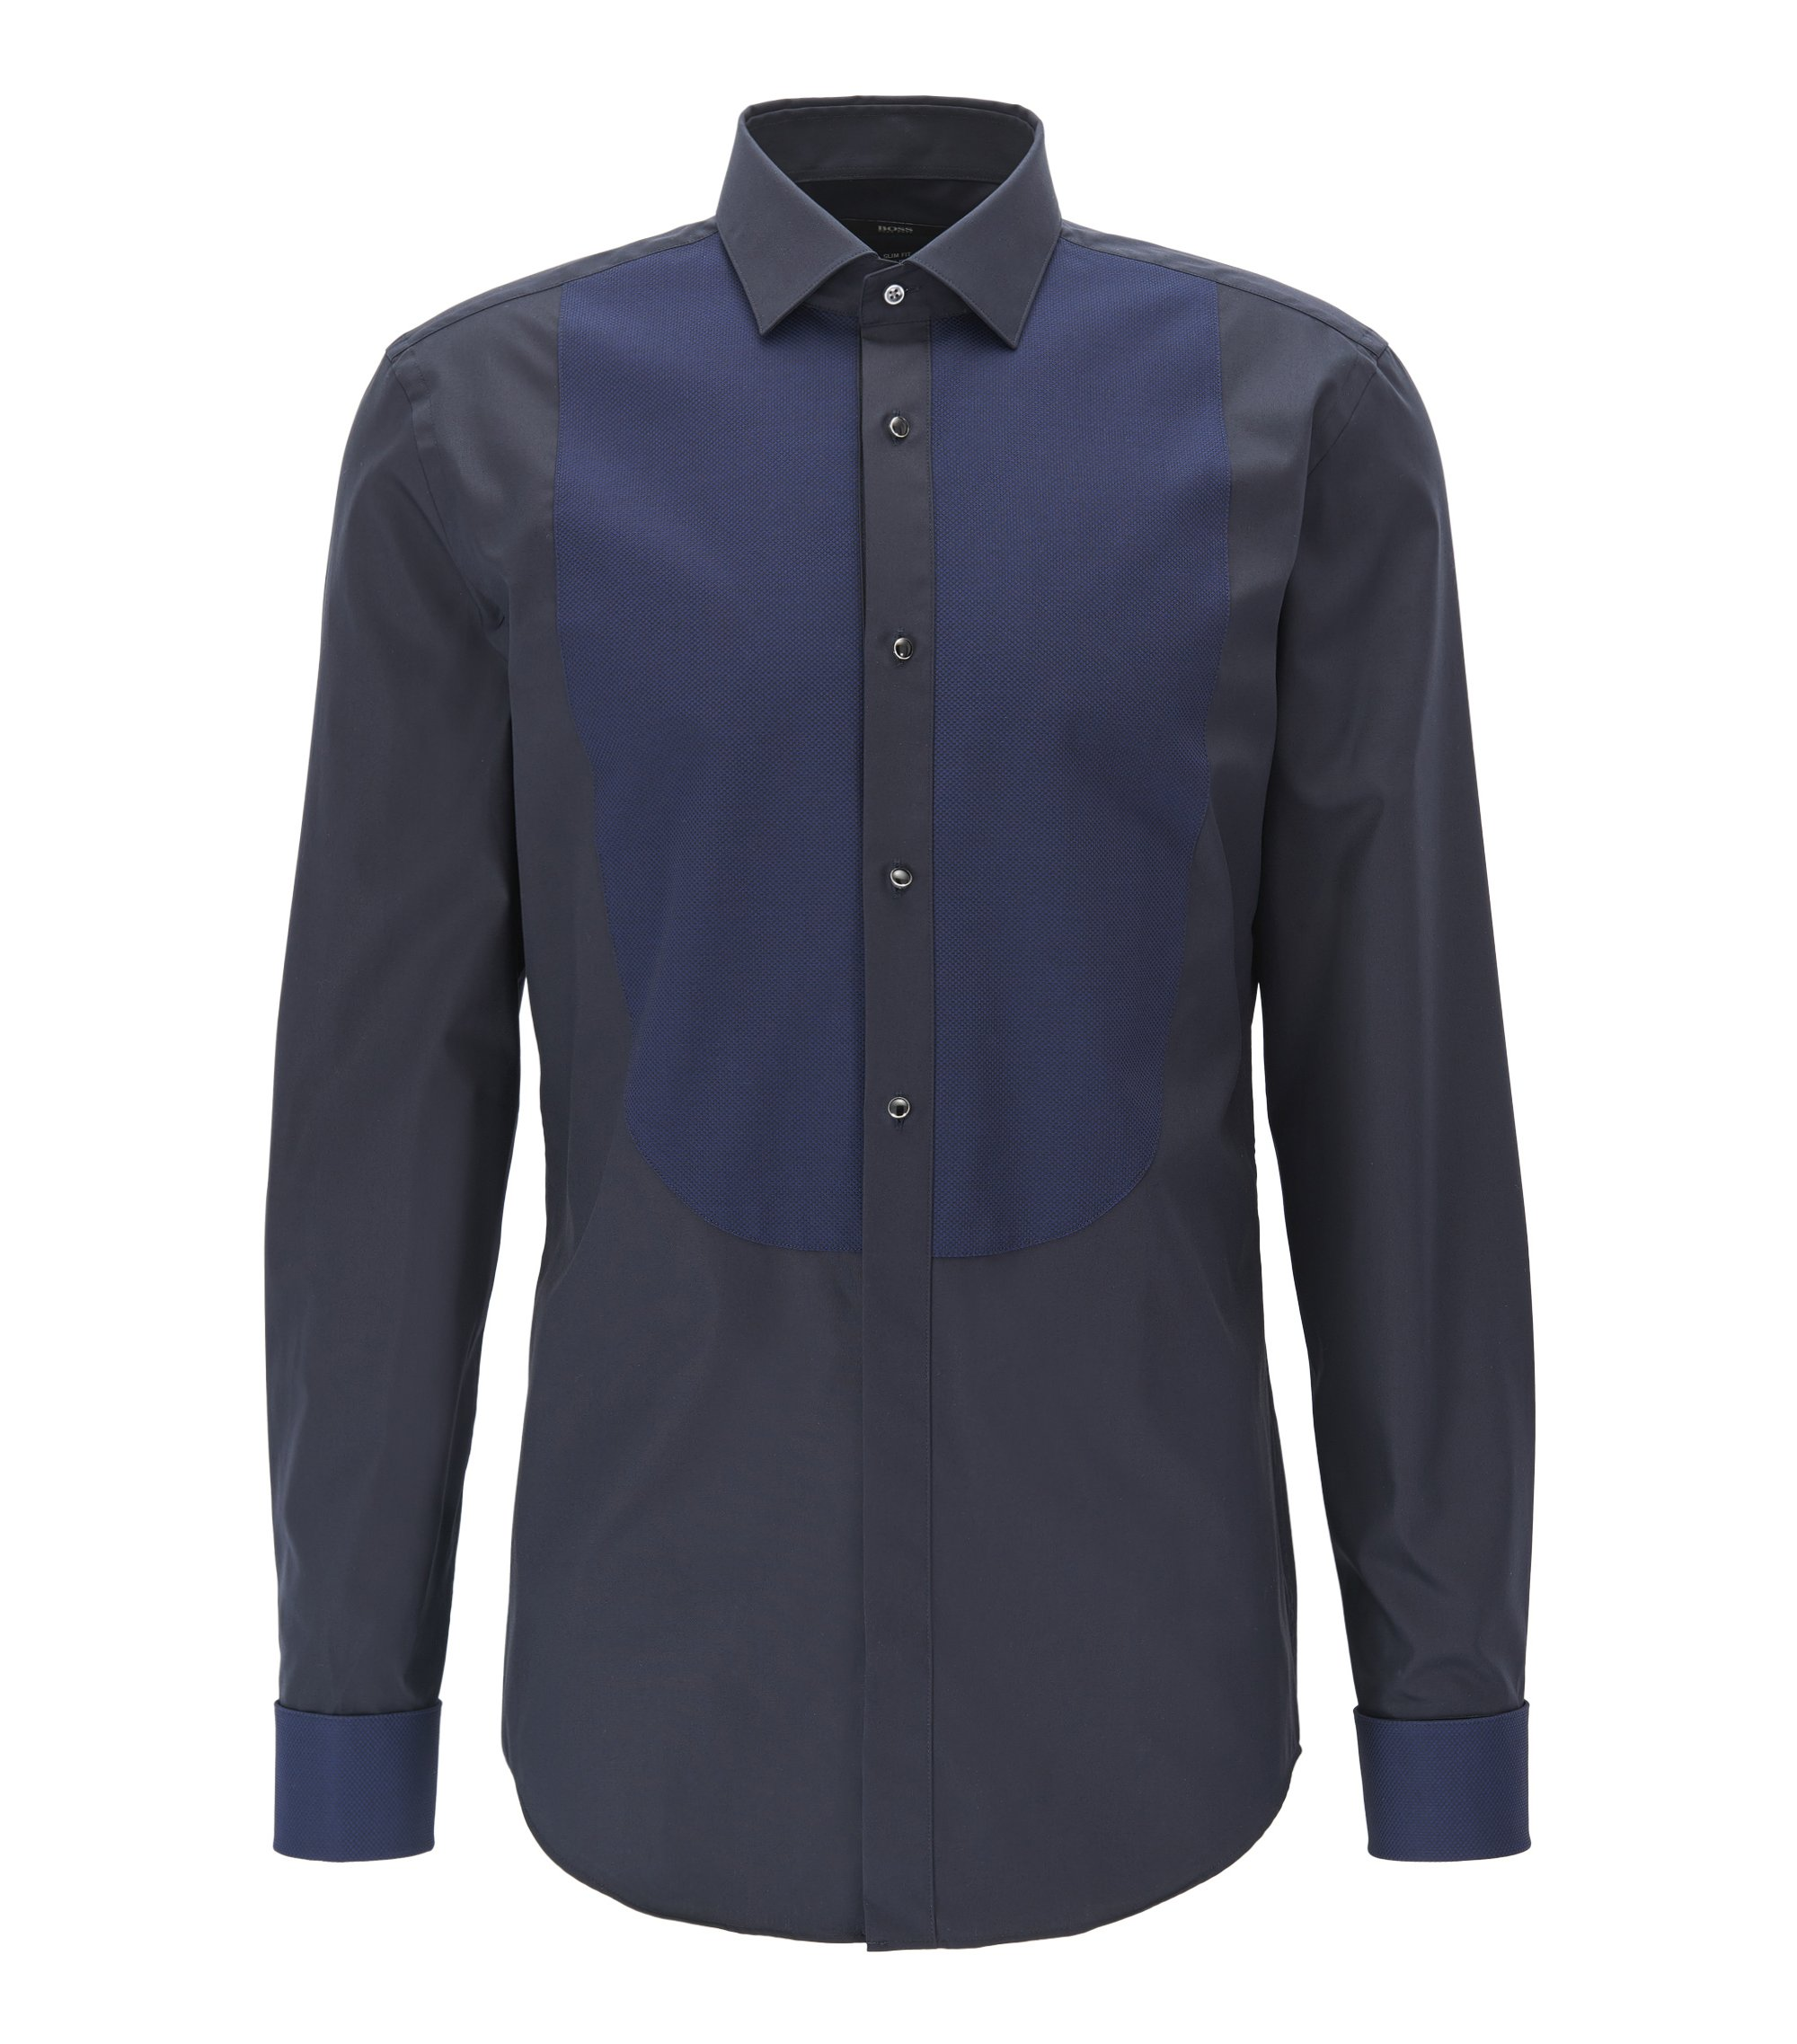 Elegante camicia slim fit in cotone facile da stirare, Blu scuro